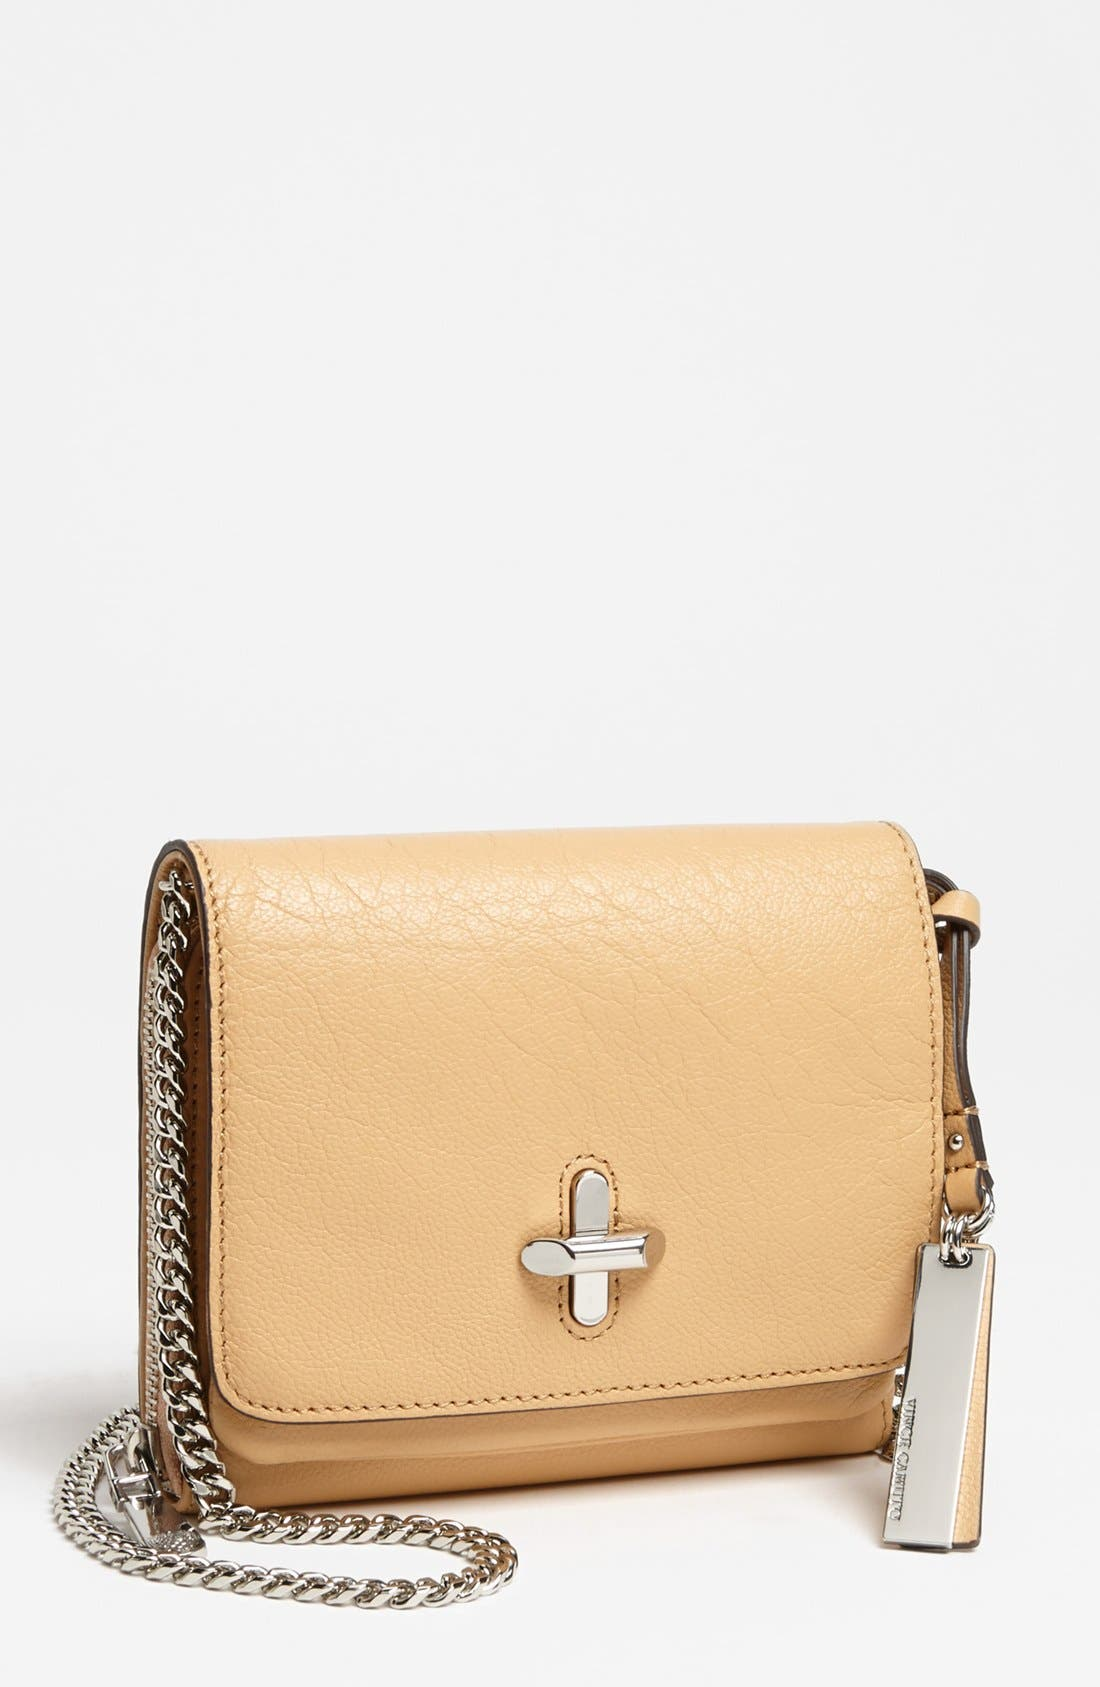 Main Image - Vince Camuto 'Lexi' Crossbody Bag